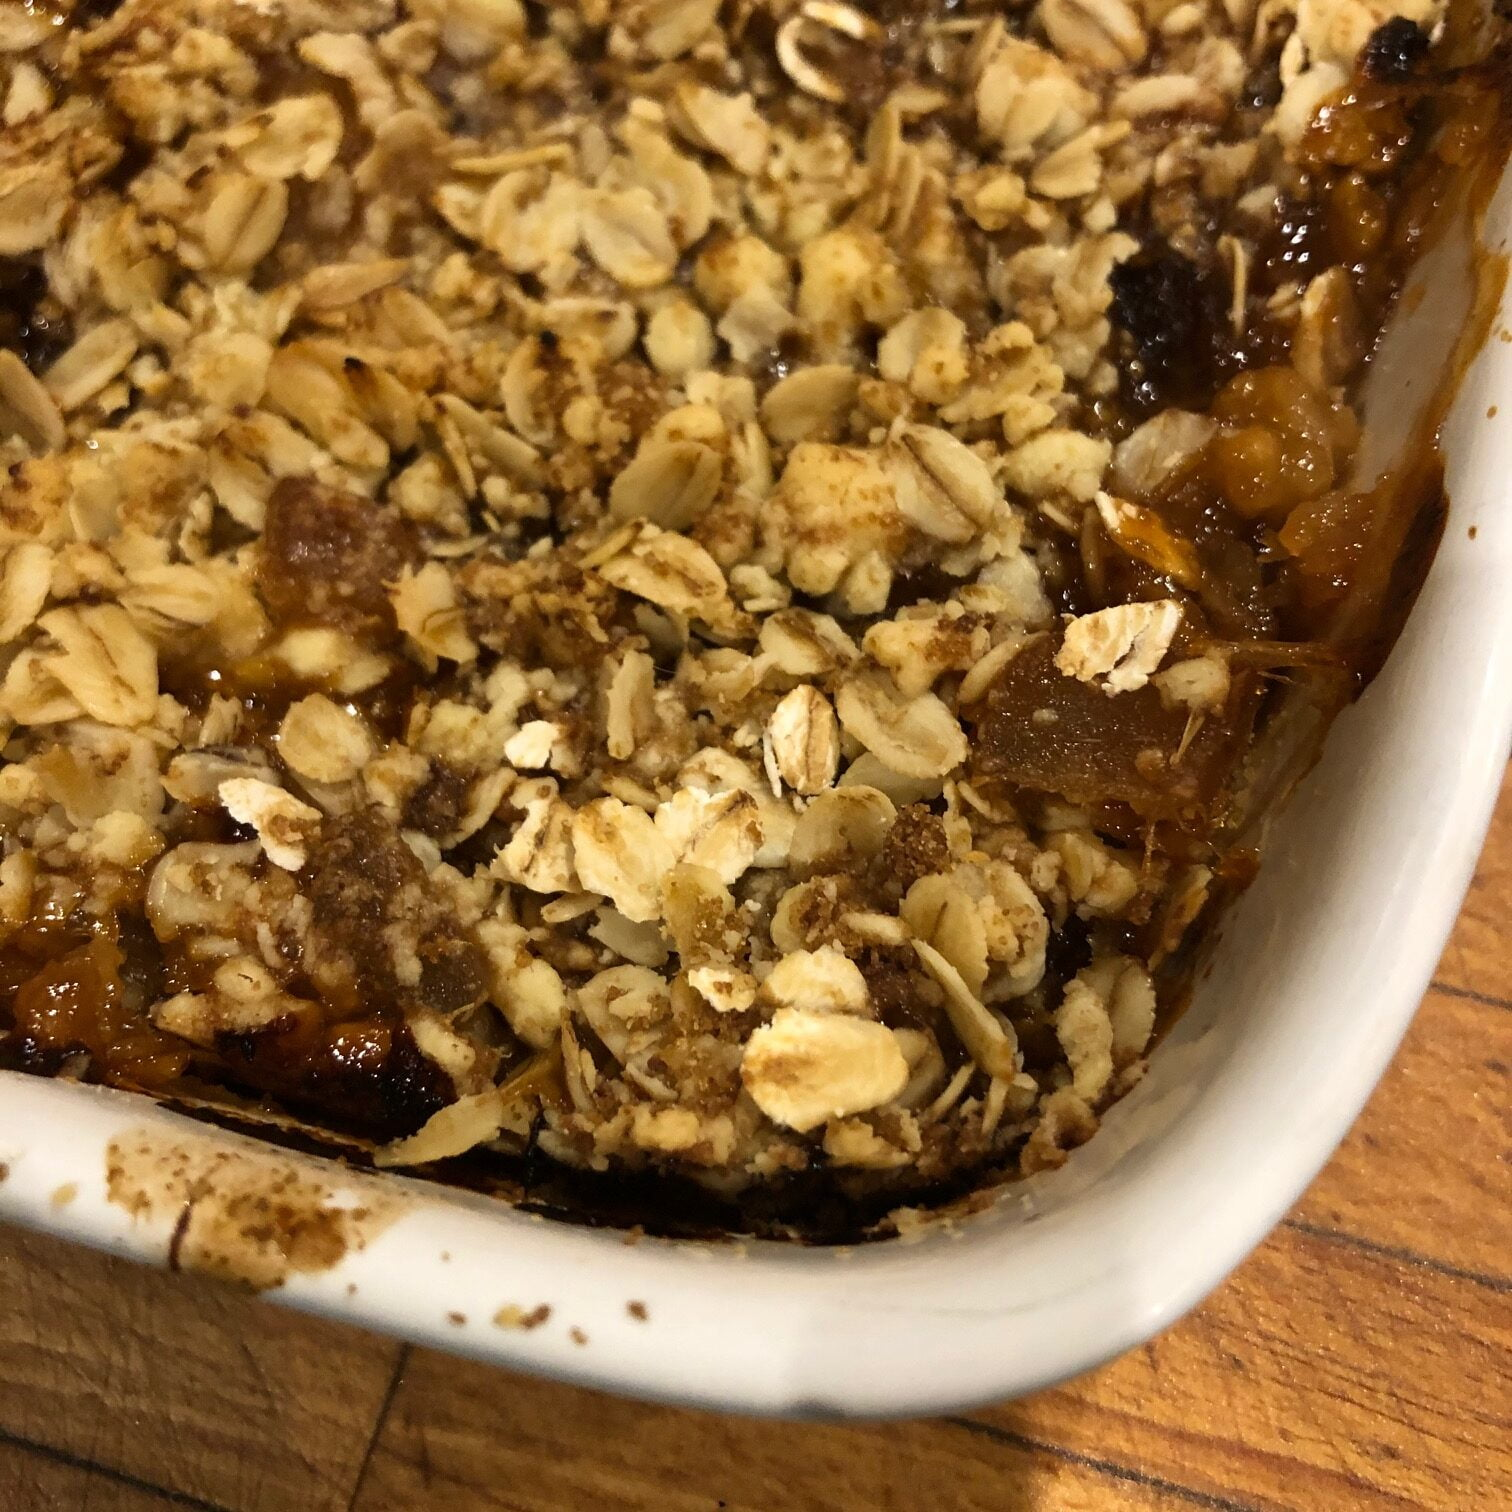 Rhubarb & Sticky Ginger Crumble